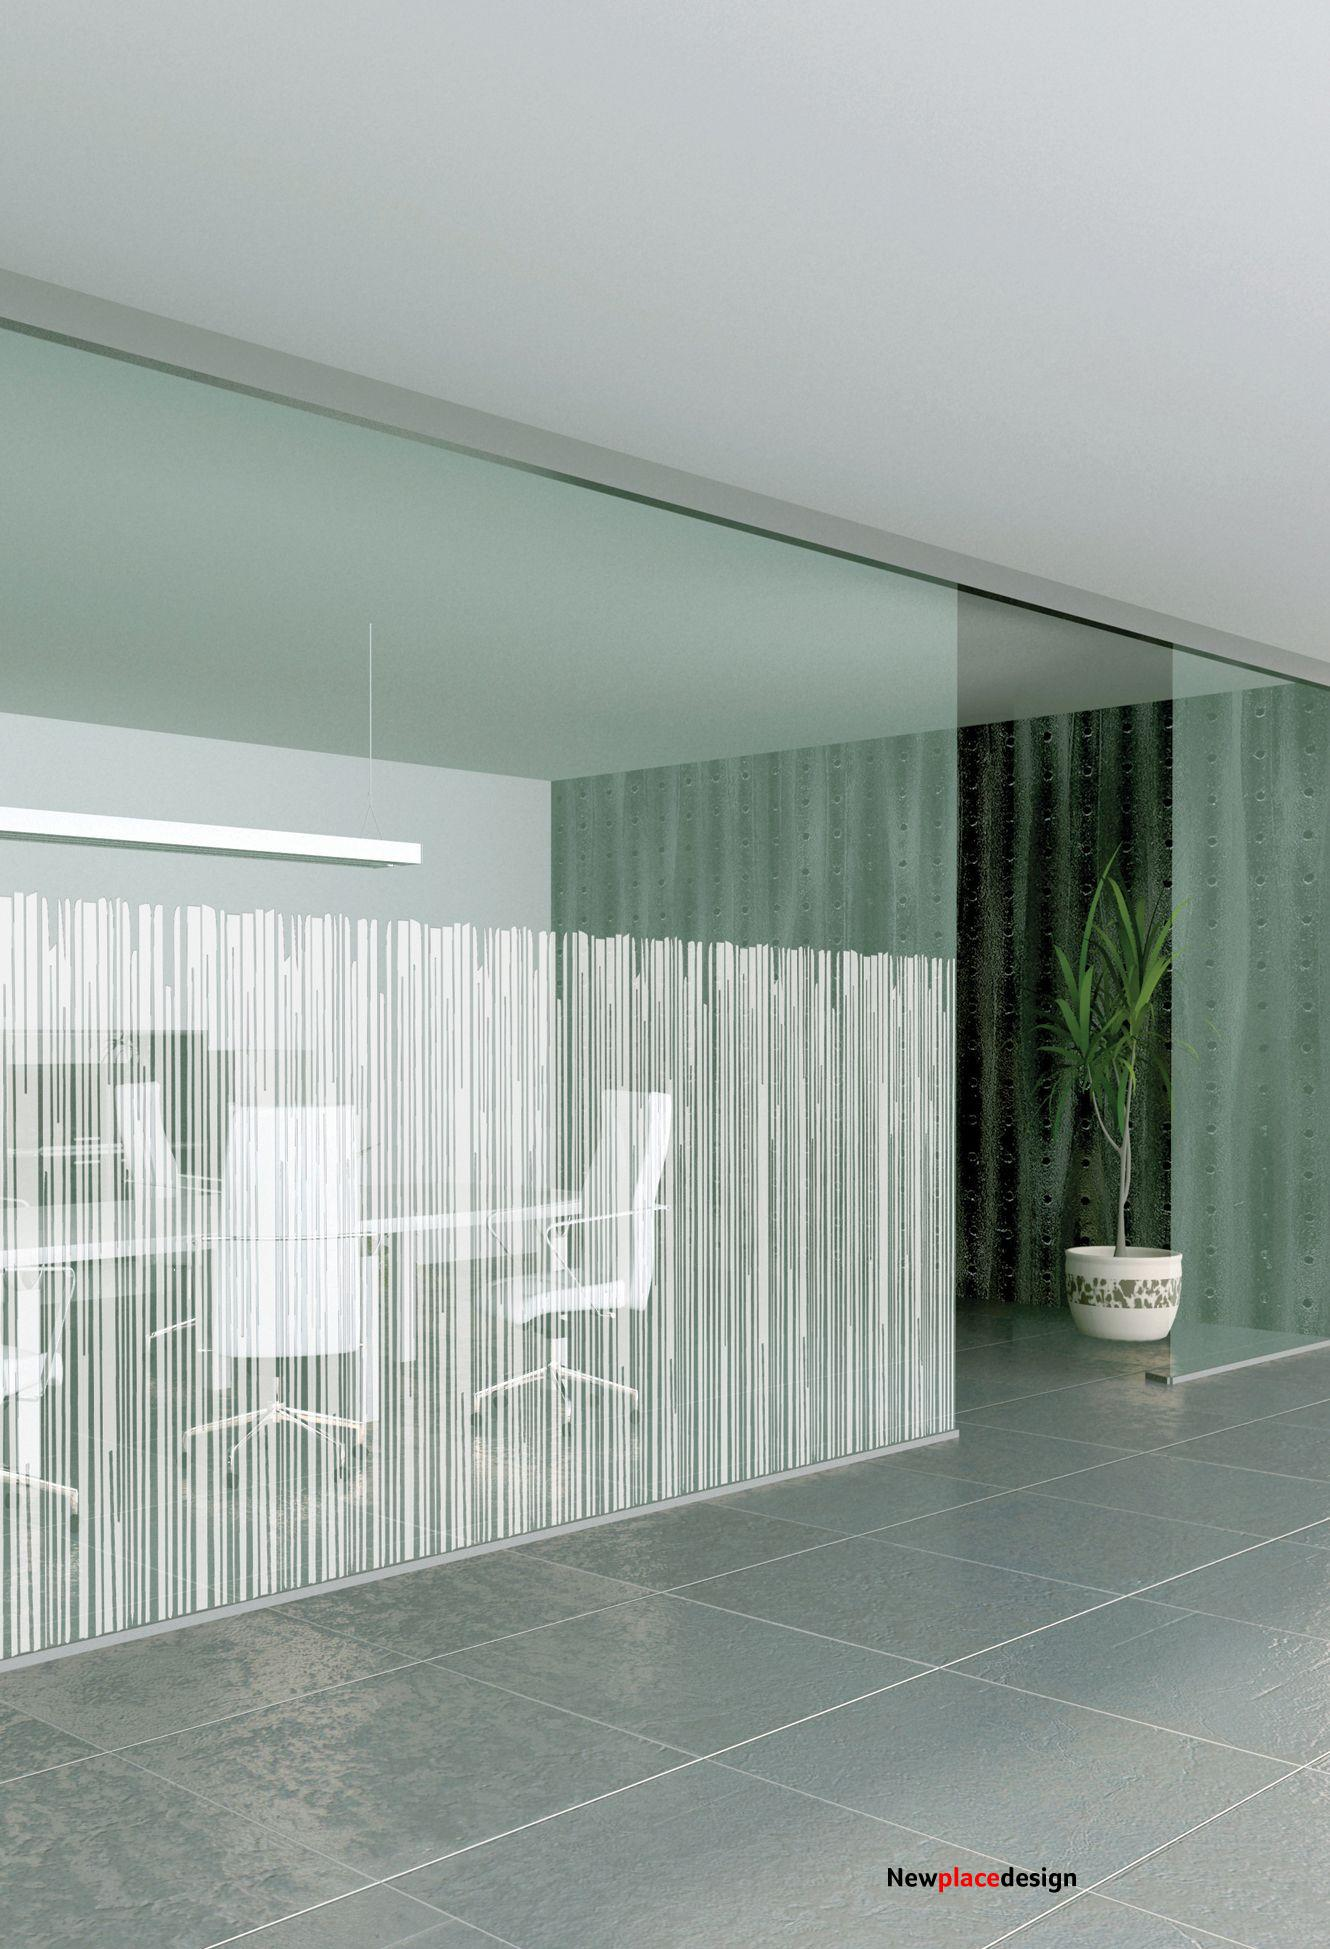 Solar Screen offers film solutions for all types of glazing.